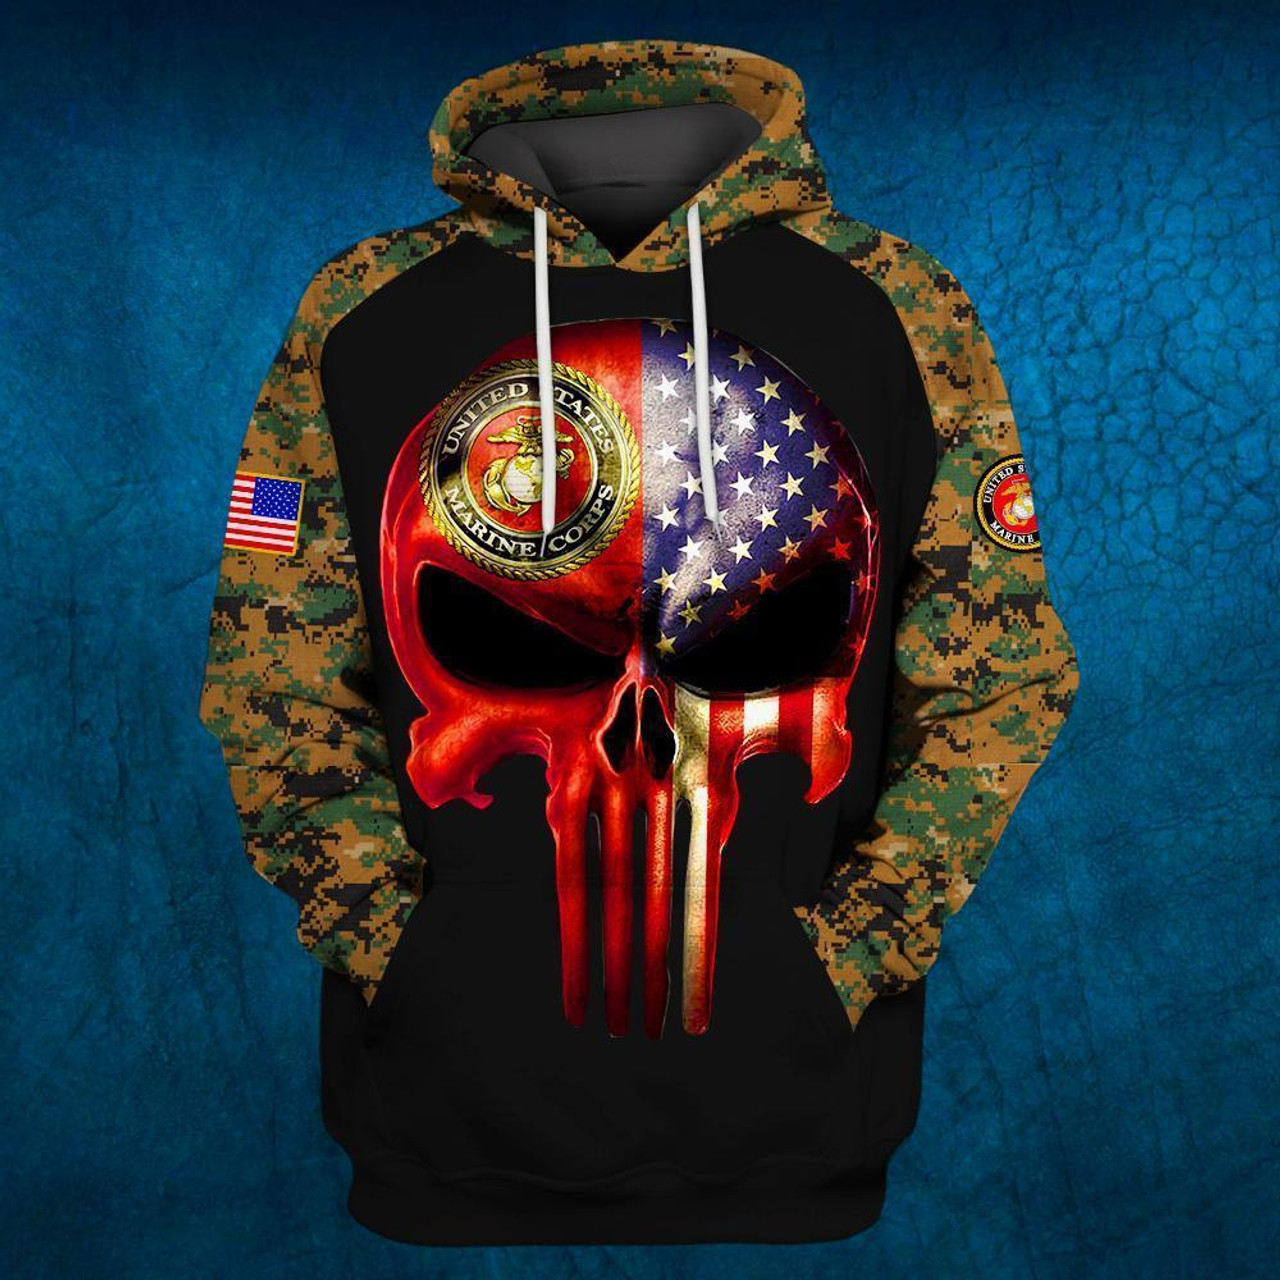 **(OFFICIAL-U.S.MARINE-DIGITAL-CAMO.PULLOVER-HOODIES/PATRIOTIC-PUNISHER-SKULL & OFFICIAL-CLASSIC-MARINES-GLOBE & ANCHOR-EMBLEM/NICE-3D-CUSTOM-DETAILED-GRAPHIC-PRINTED/DOUBLE-SIDED-ALL-OVER-PRINTED-SLEEVE-DESIGNED/WARM-PREMIUM-PULLOVER-U.S.MARINES-HOODIES)**